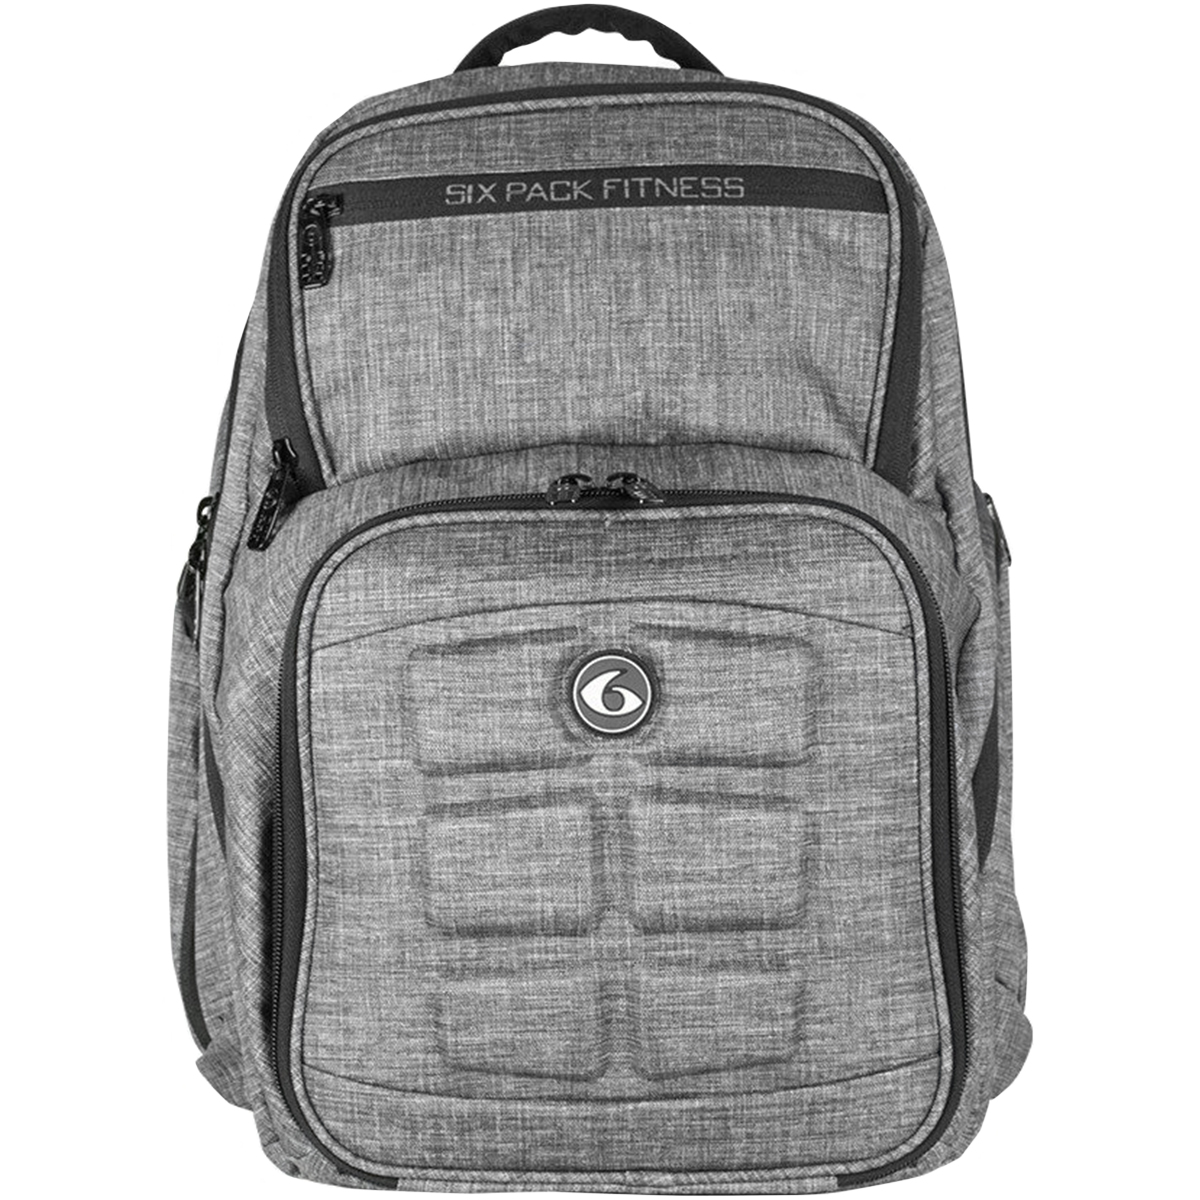 3fcef4a4ec06 6 Pack Fitness Limited Edition Expedition 300 Meal Management Backpack -  Static